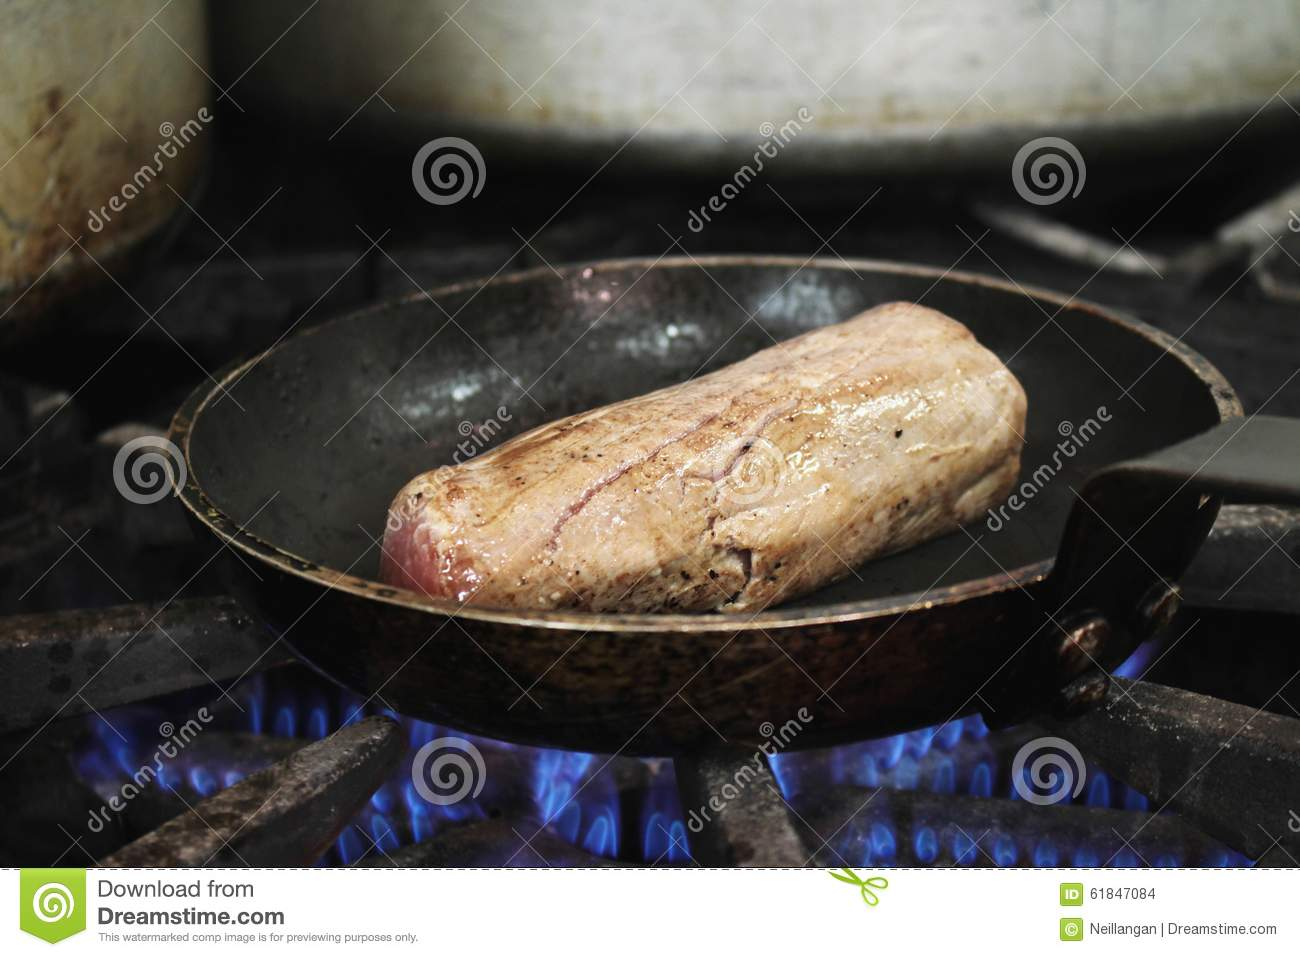 how to cook fillet steak on stove